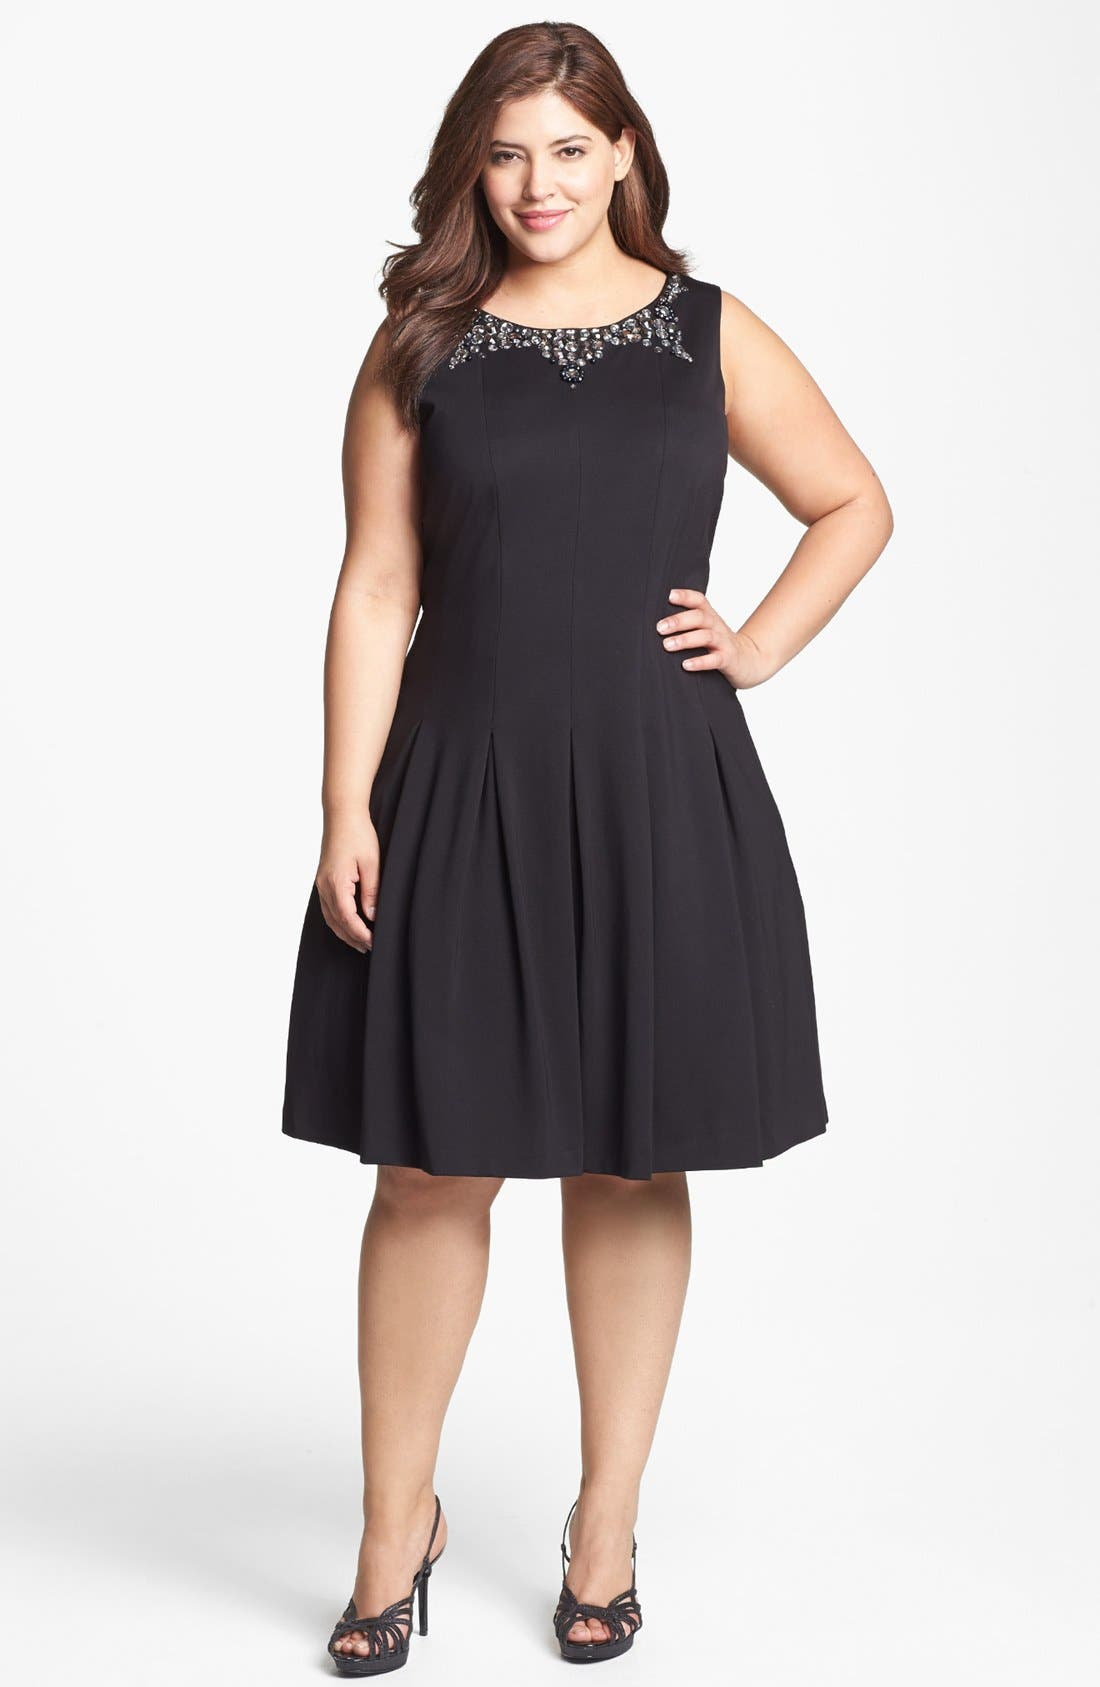 Main Image - Adrianna Papell Embellished Double Knit Fit & Flare Dress